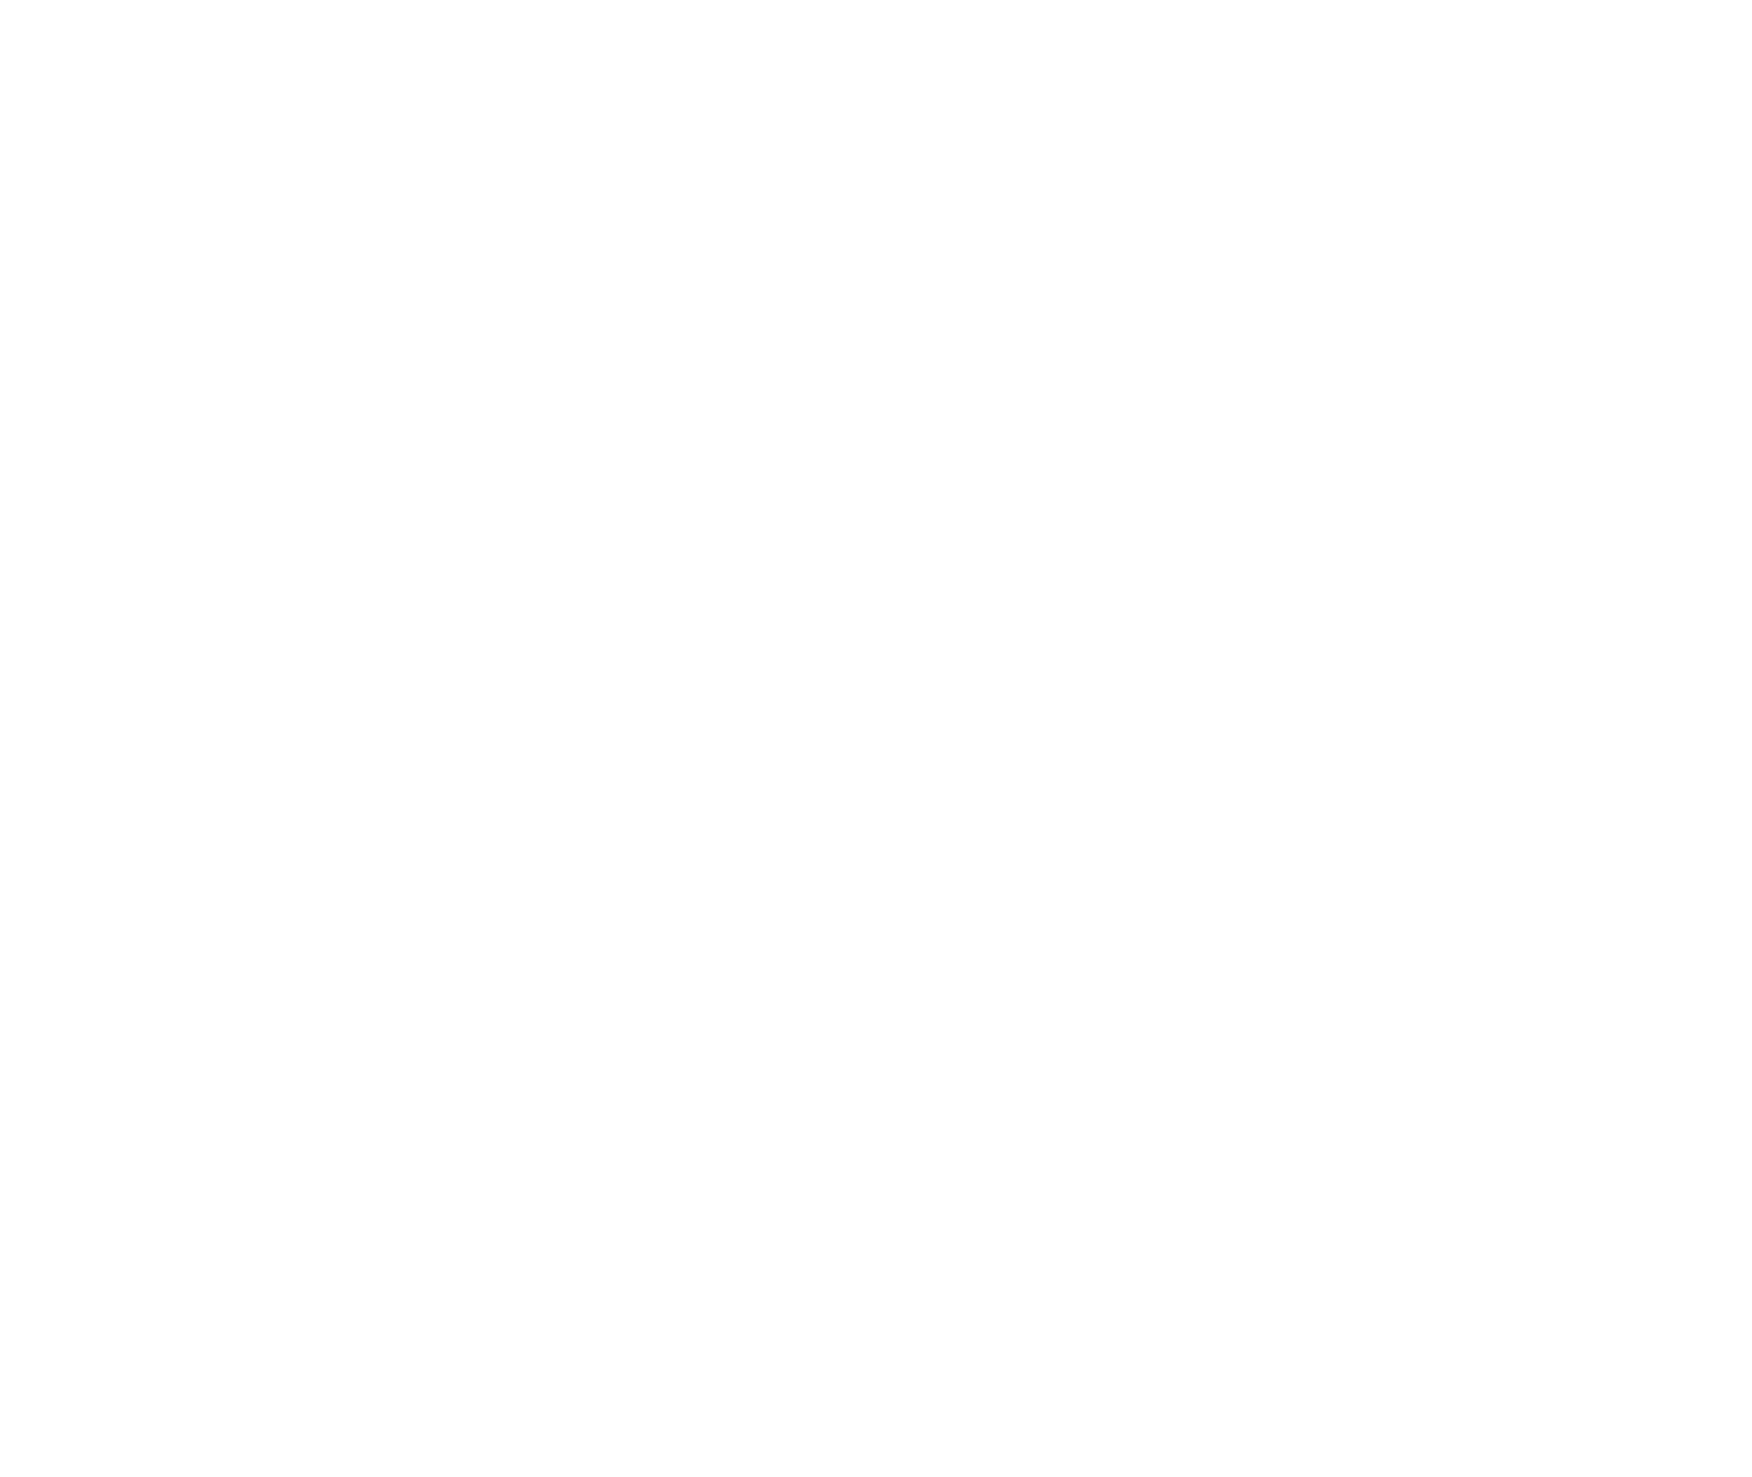 dodgers-mexicanheritagelogo-banner.png